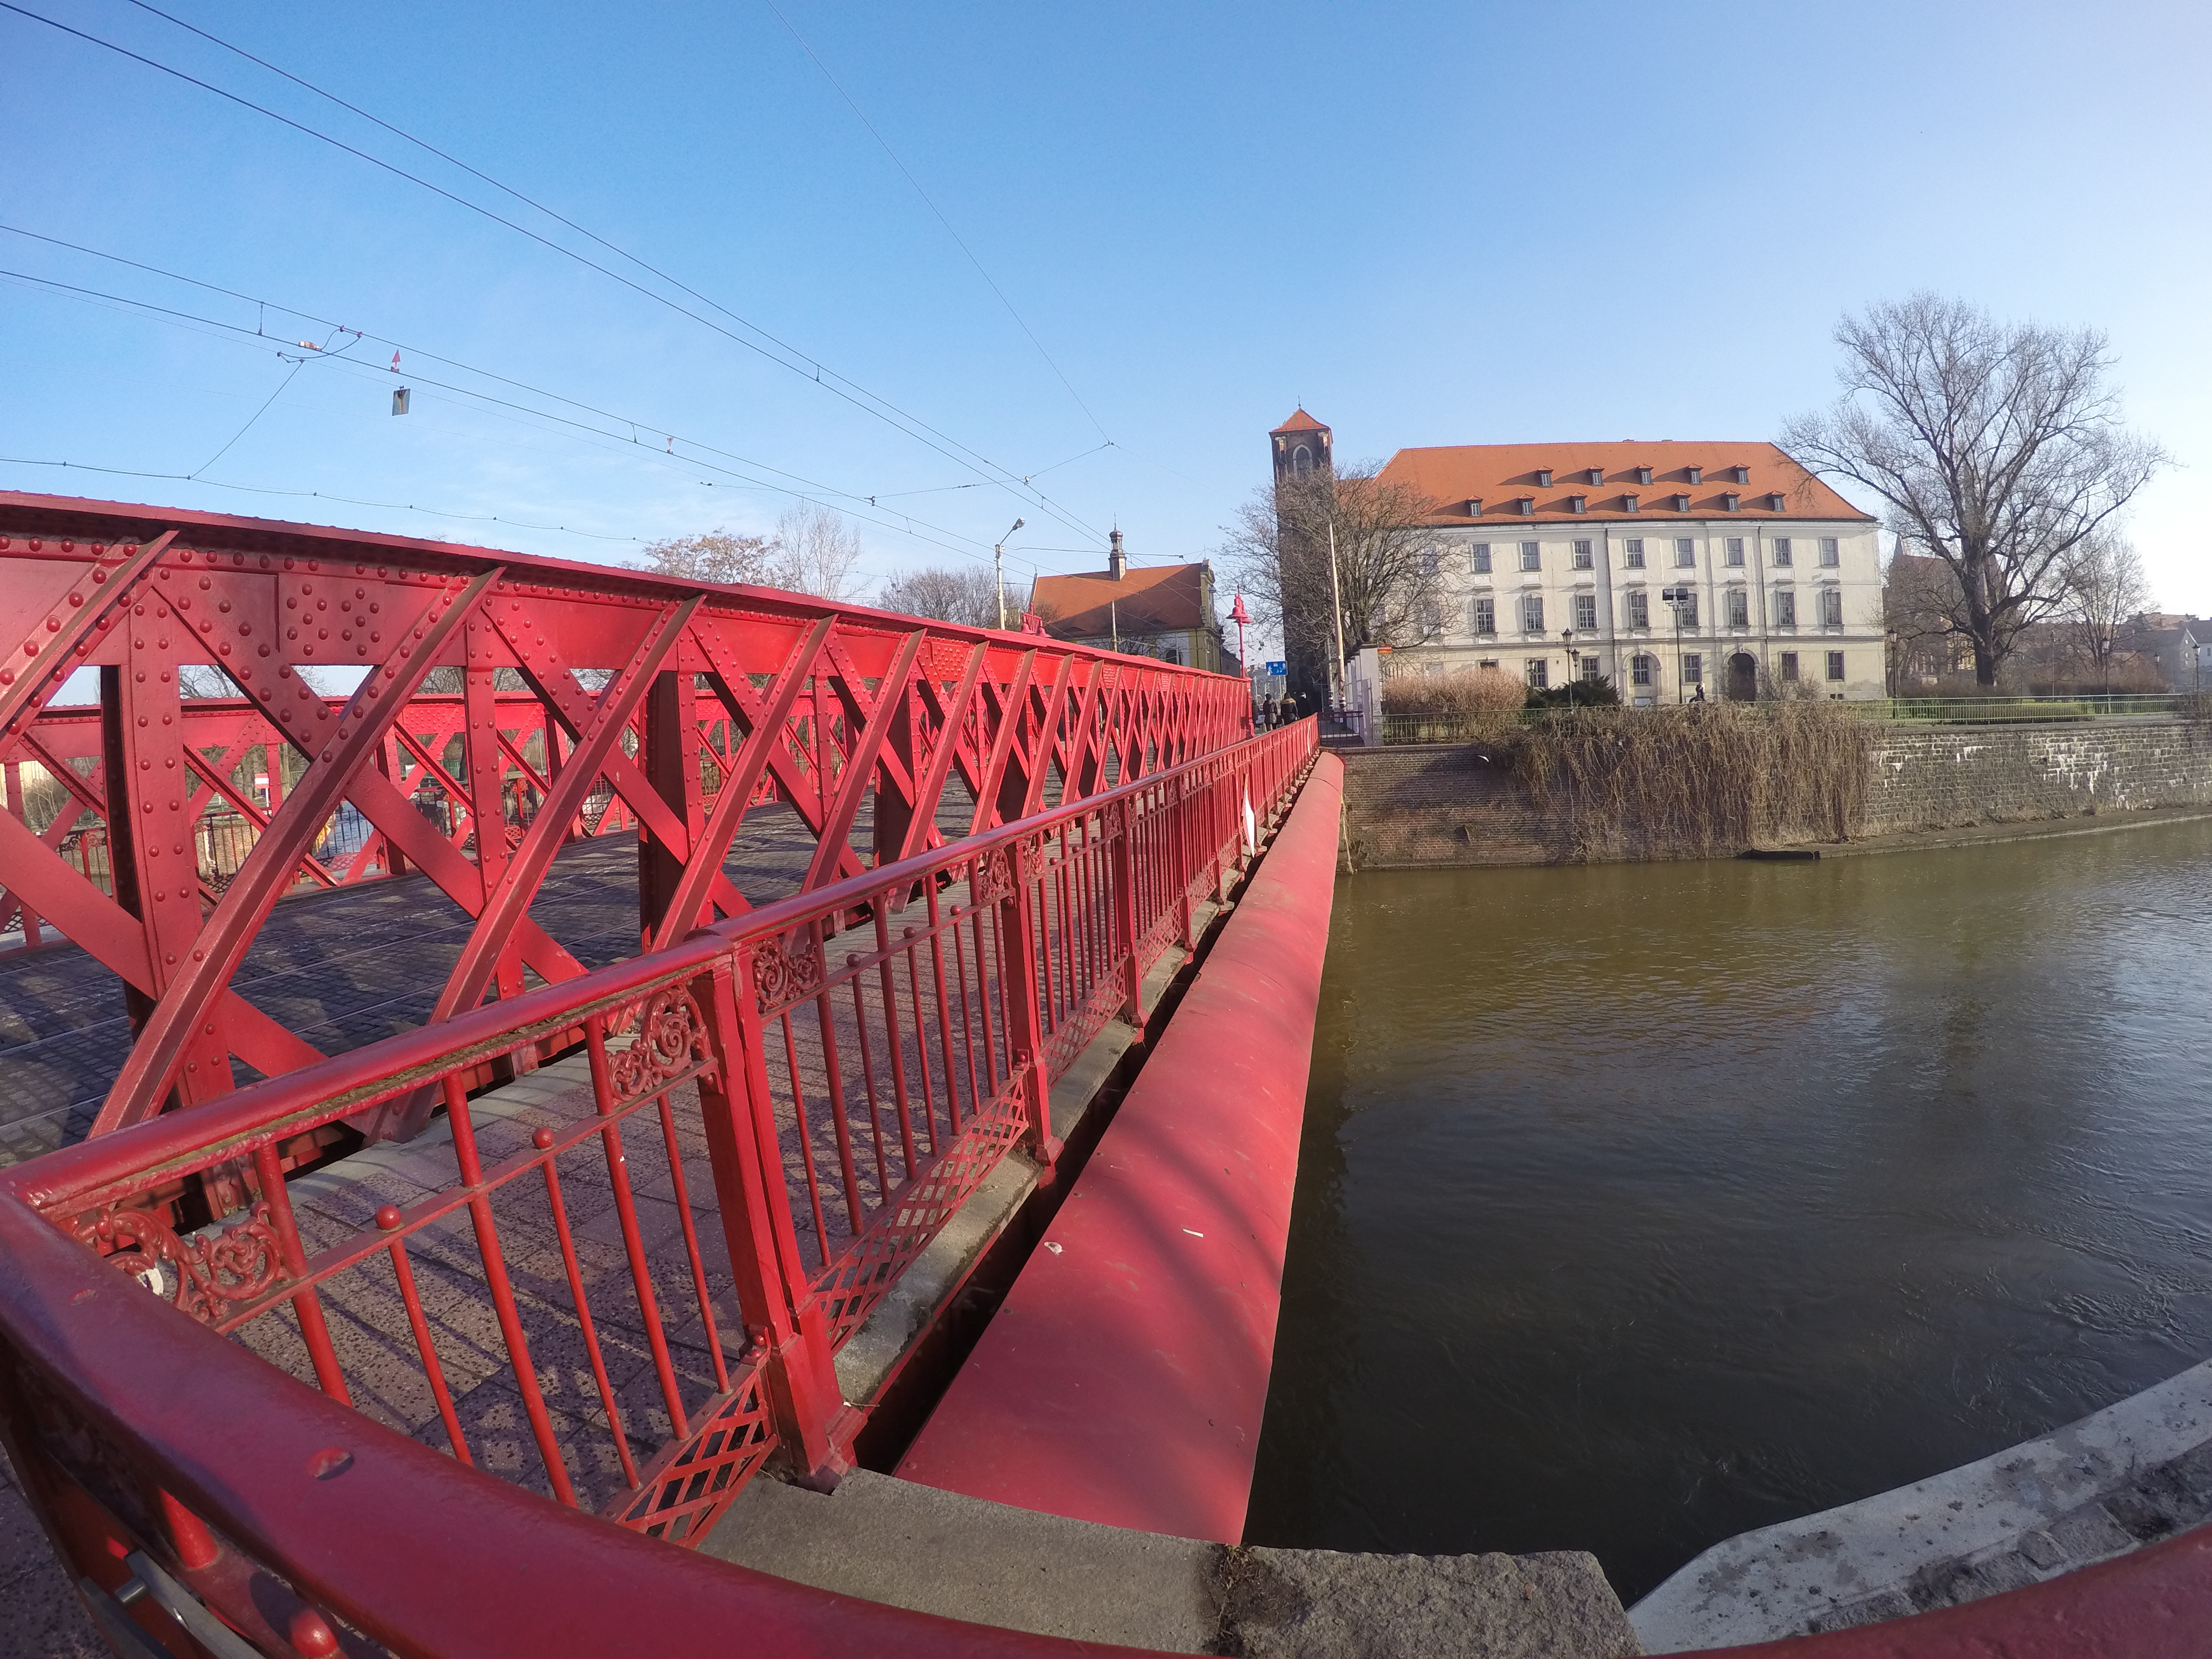 The red bridge over the river in Wroclaw